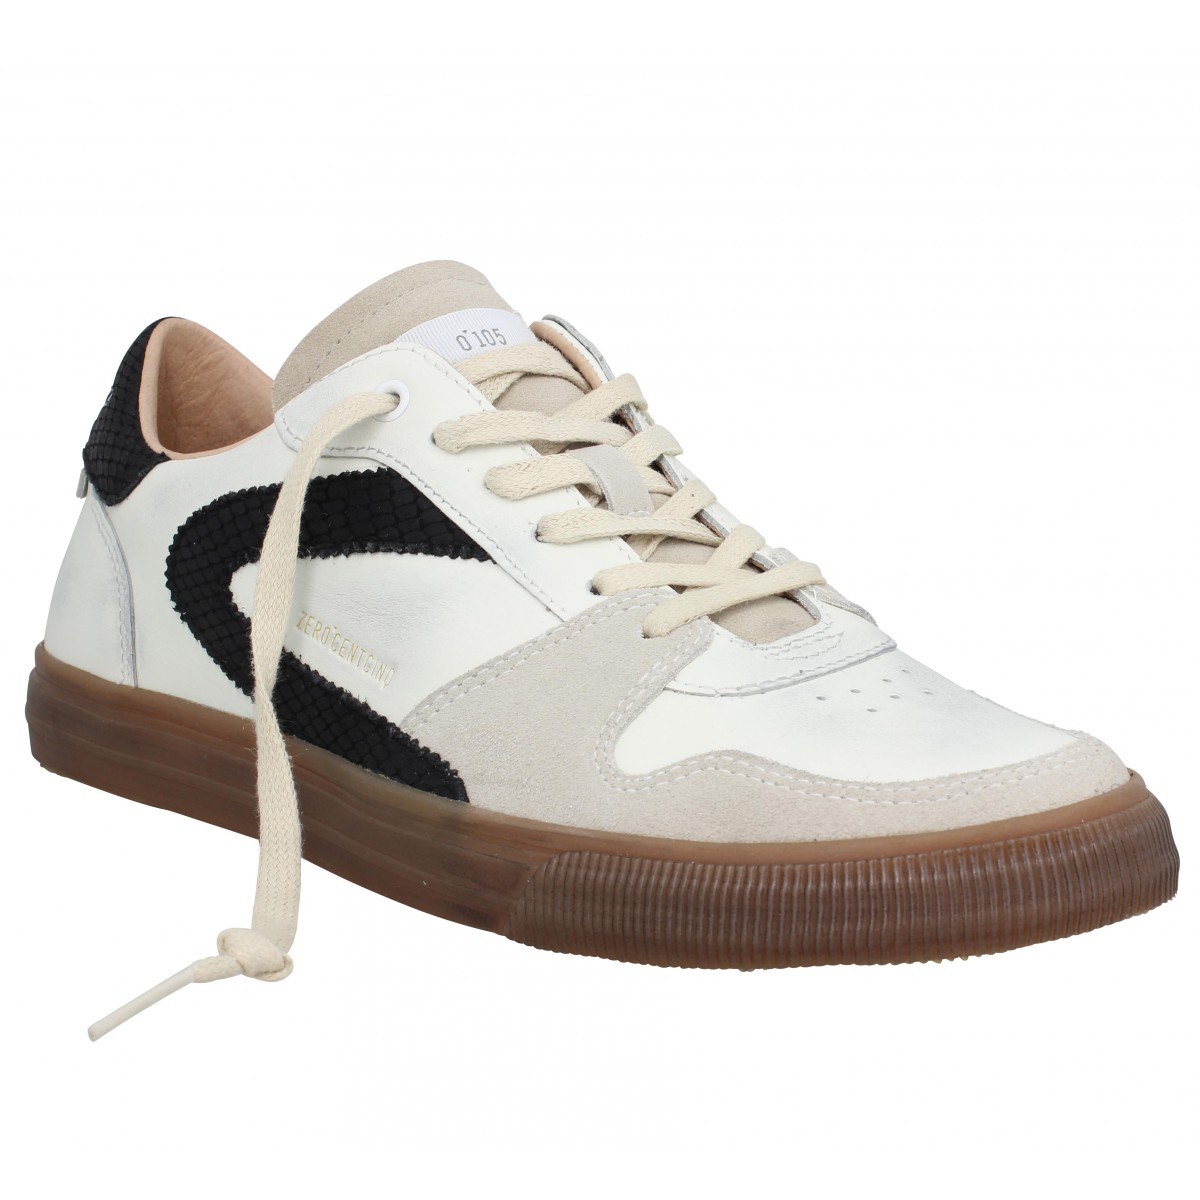 Baskets 0-105 Guillermo cuir Homme Blanc